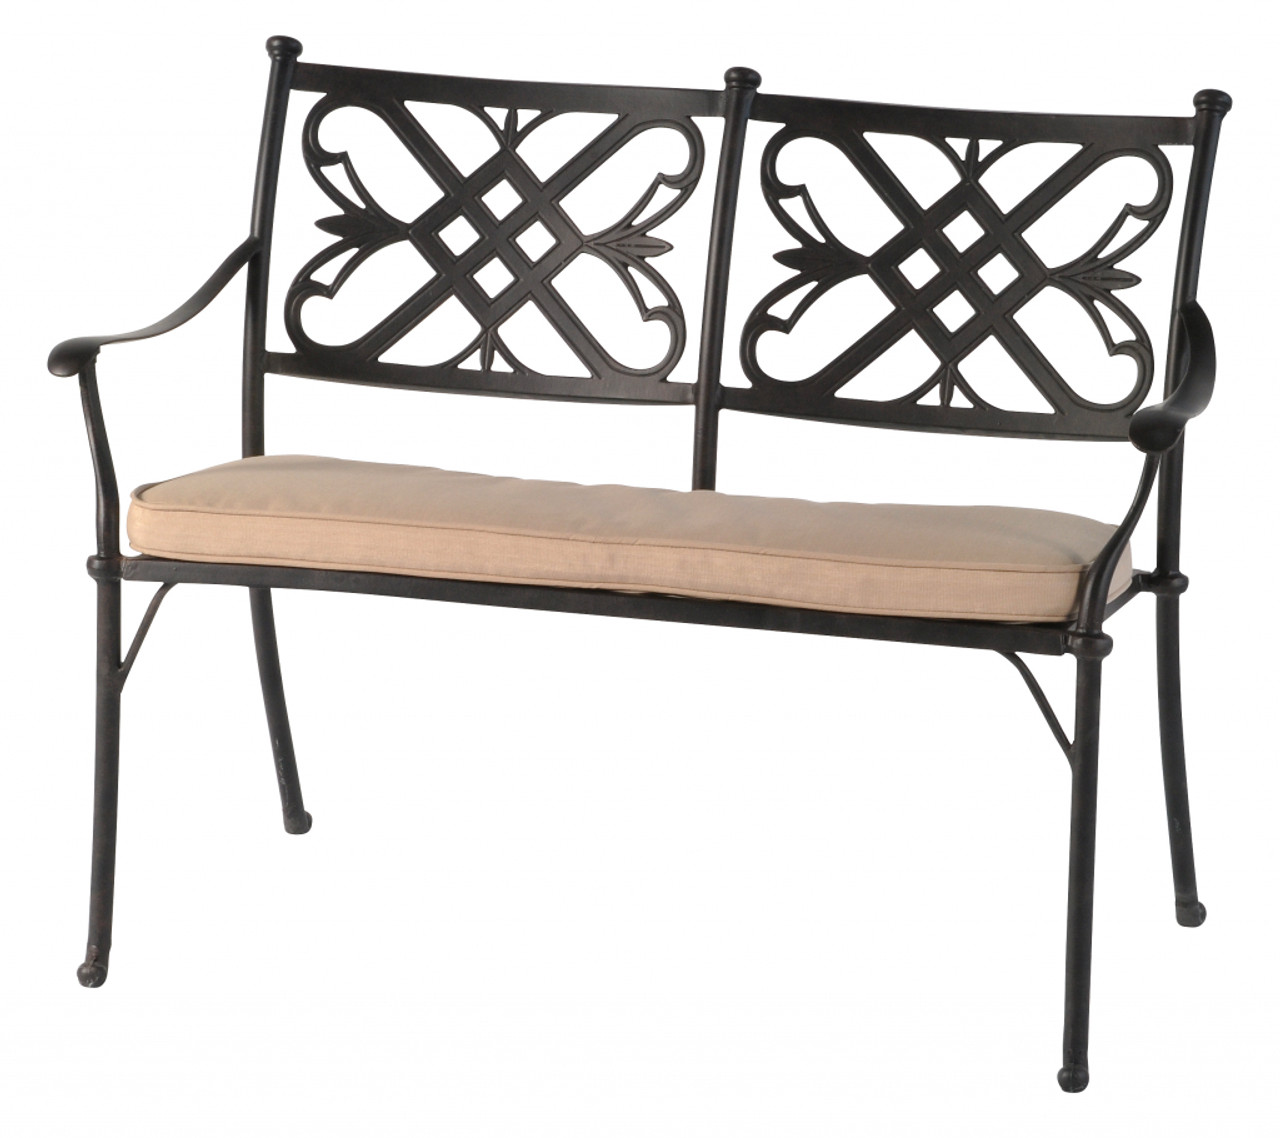 Sarasota Garden Bench  -  LOCAL DELIVERY ONLY